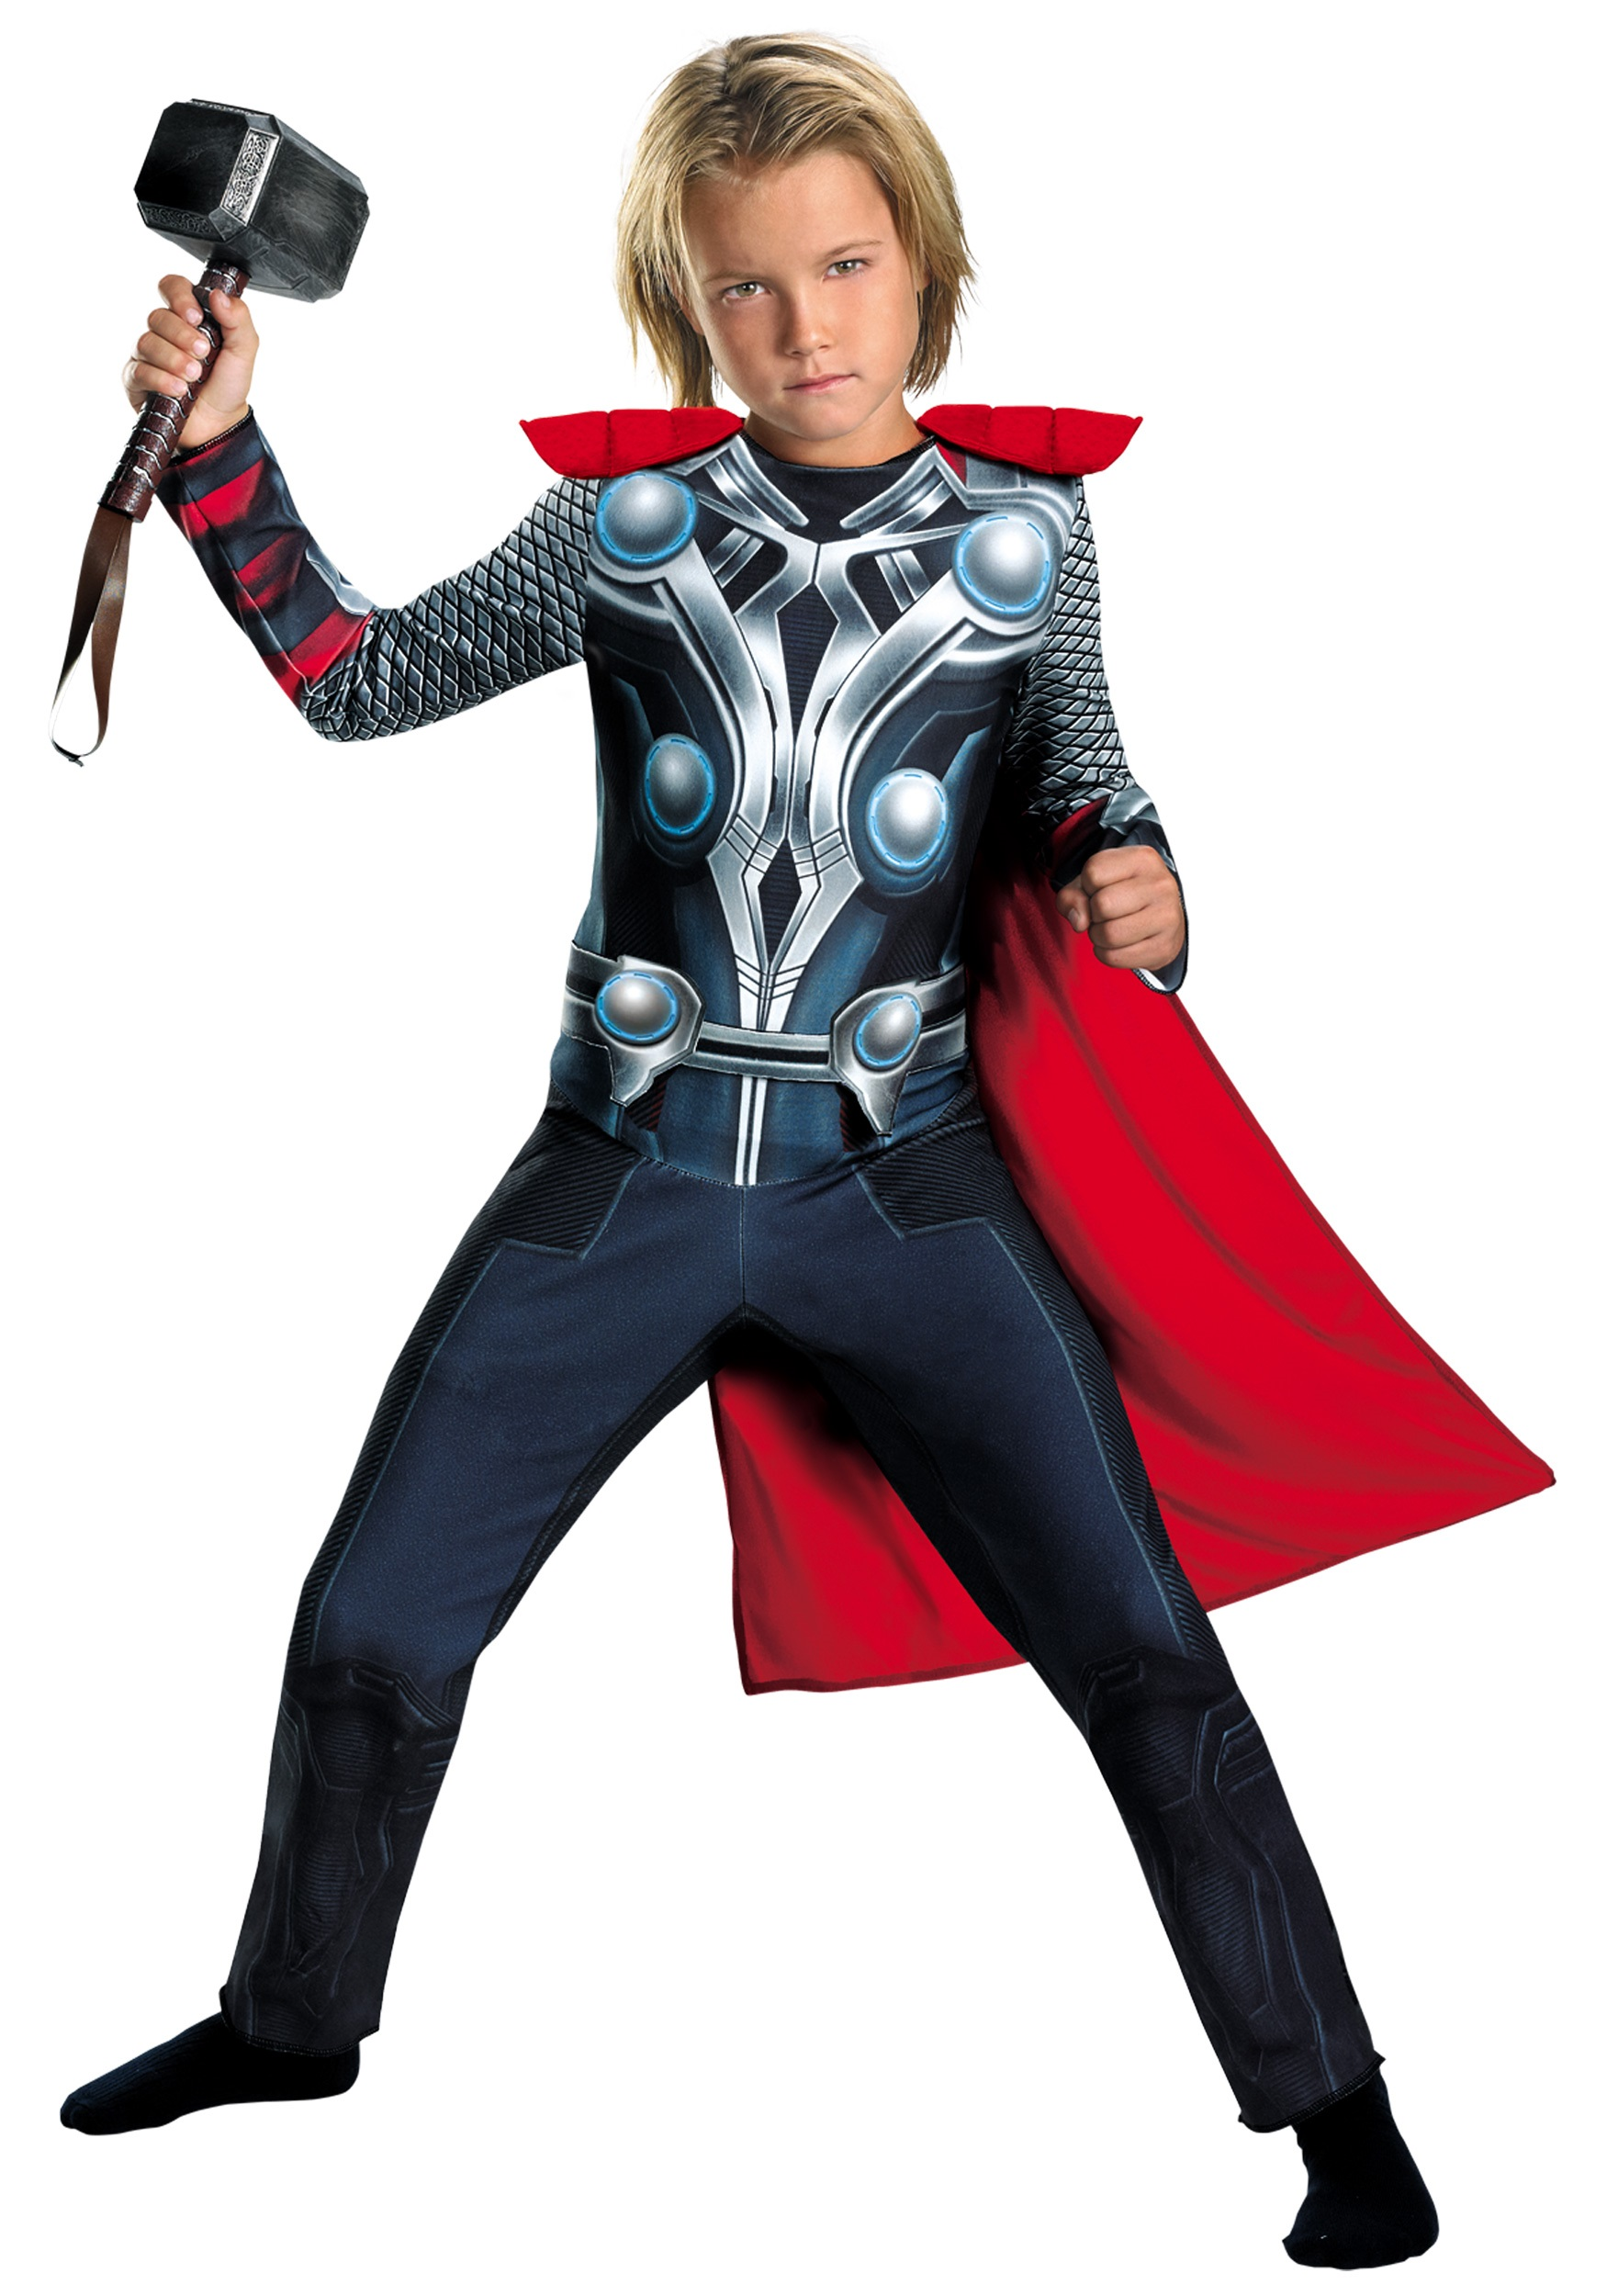 Child Avengers Thor Costume  sc 1 st  Halloween Costumes & Child Avengers Thor Costume - Halloween Costumes